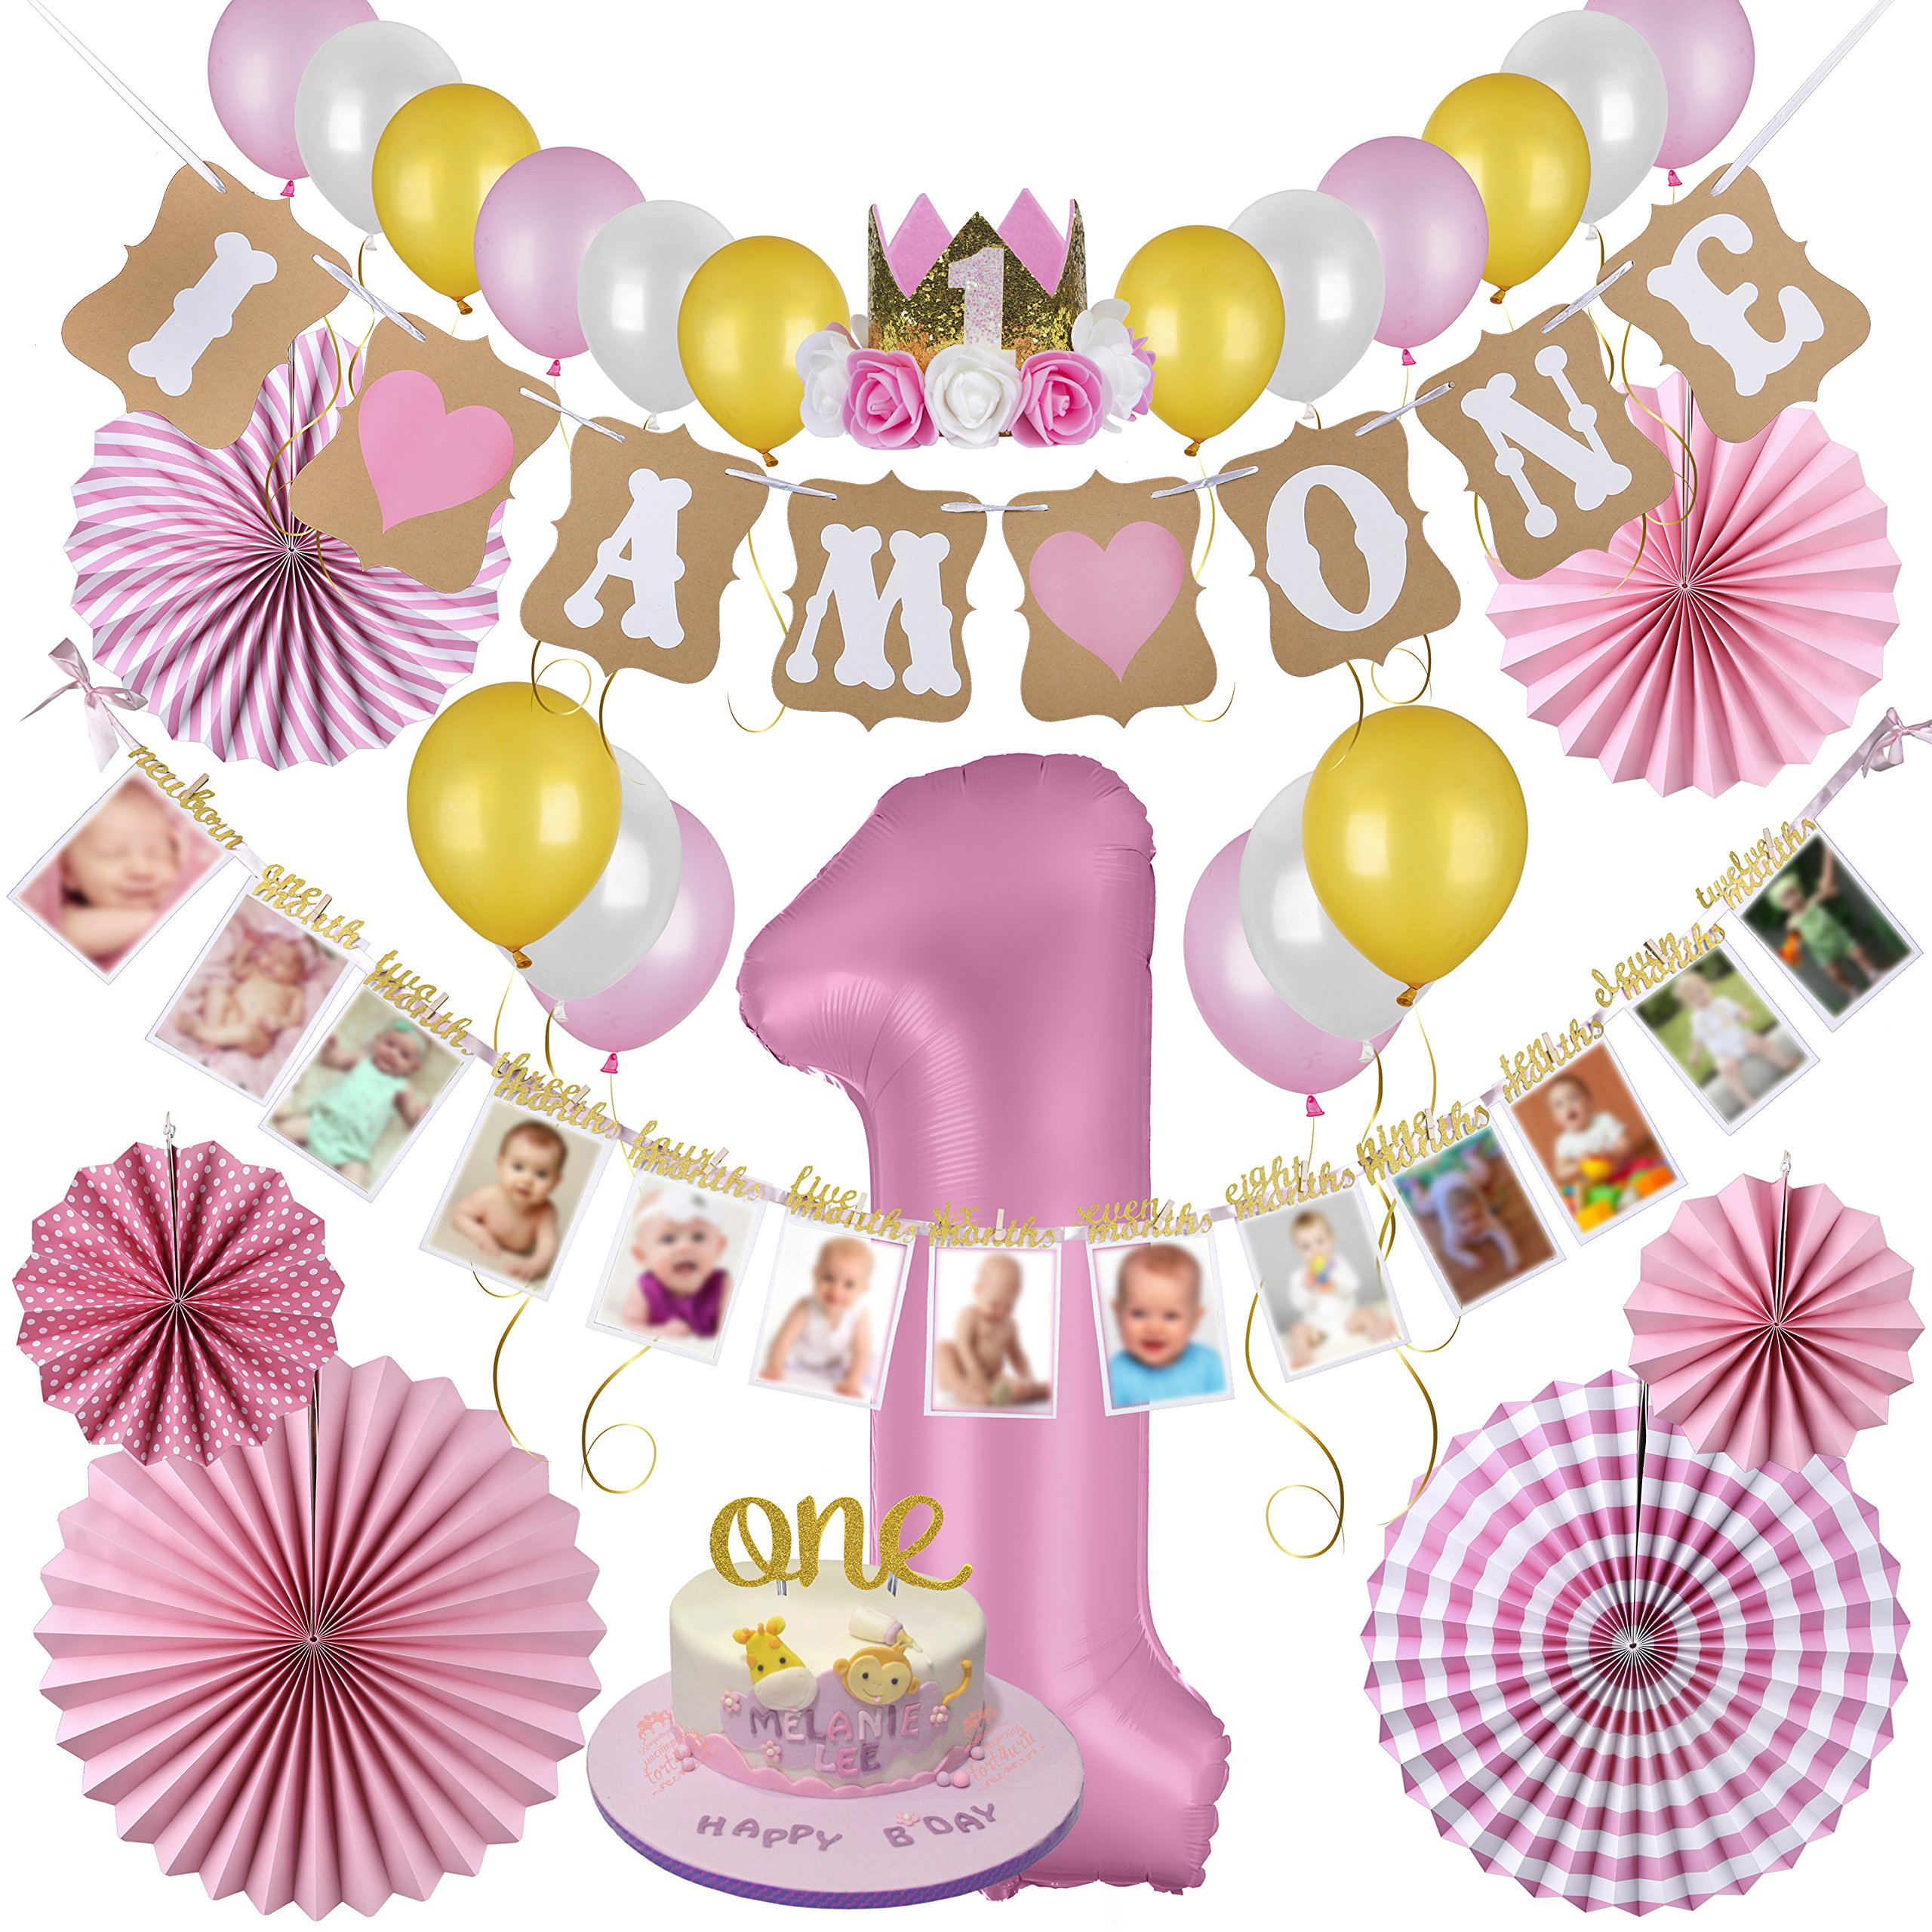 6f96601e9 First Birthday Decorations & Party Supplies by Aliza | Monthly Milestone  Banner - One Cake Topper – 1st Birthday Hat - Balloons - Pink Paper Fans –  The ...